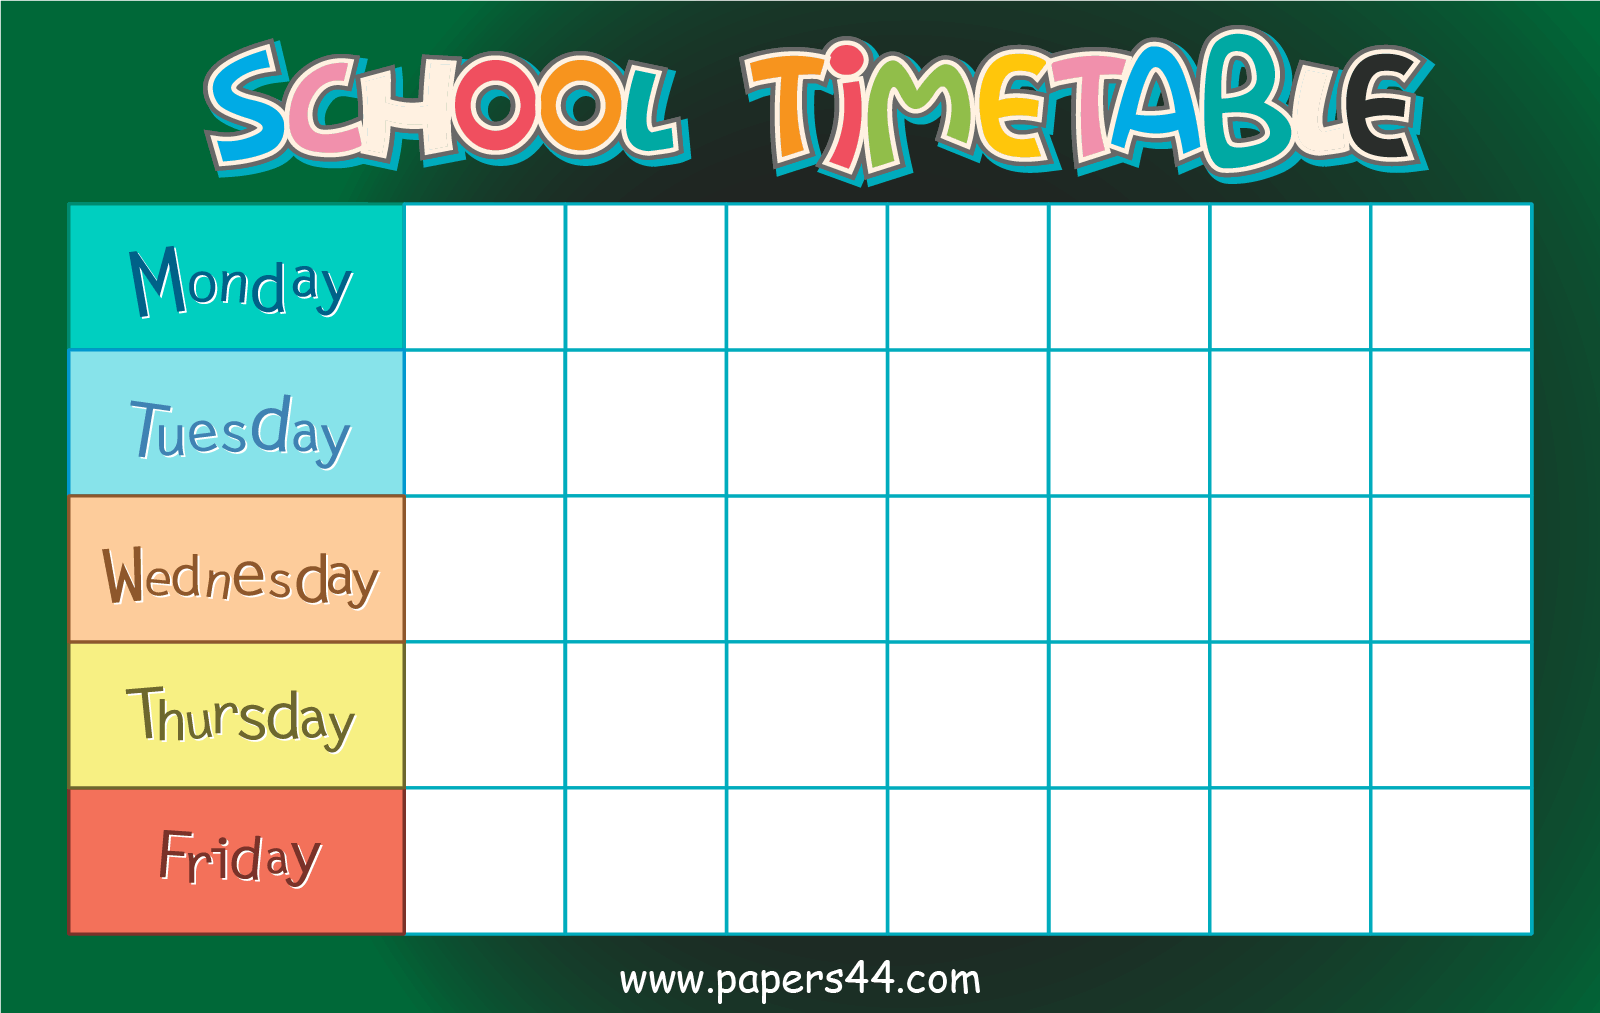 schooltime-table-colored.png